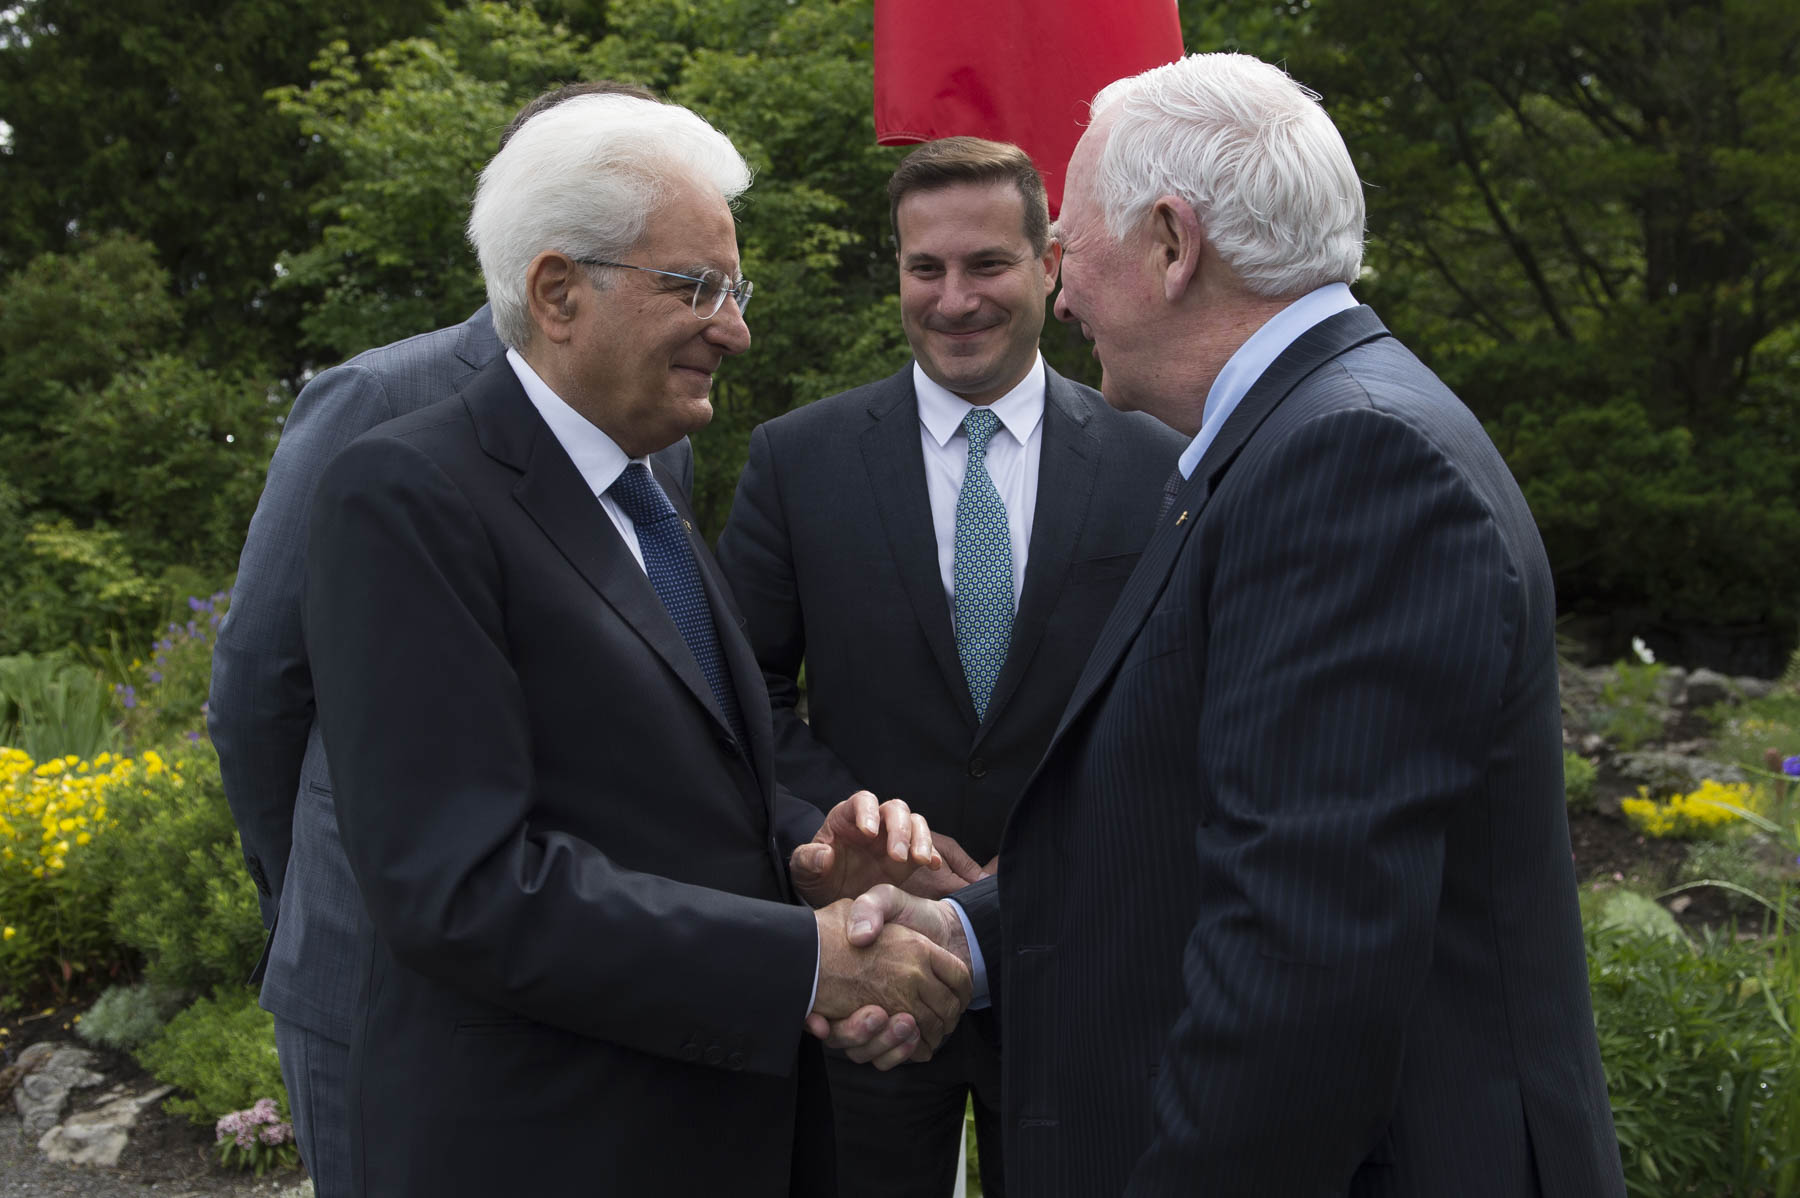 His Excellency the Right Honourable David Johnston, Governor General of Canada, welcomed His Excellency Sergio Mattarella, President of the Italian Republic, to Rideau Hall, on June 27, 2017, on the occasion of the President's State visit to Canada.